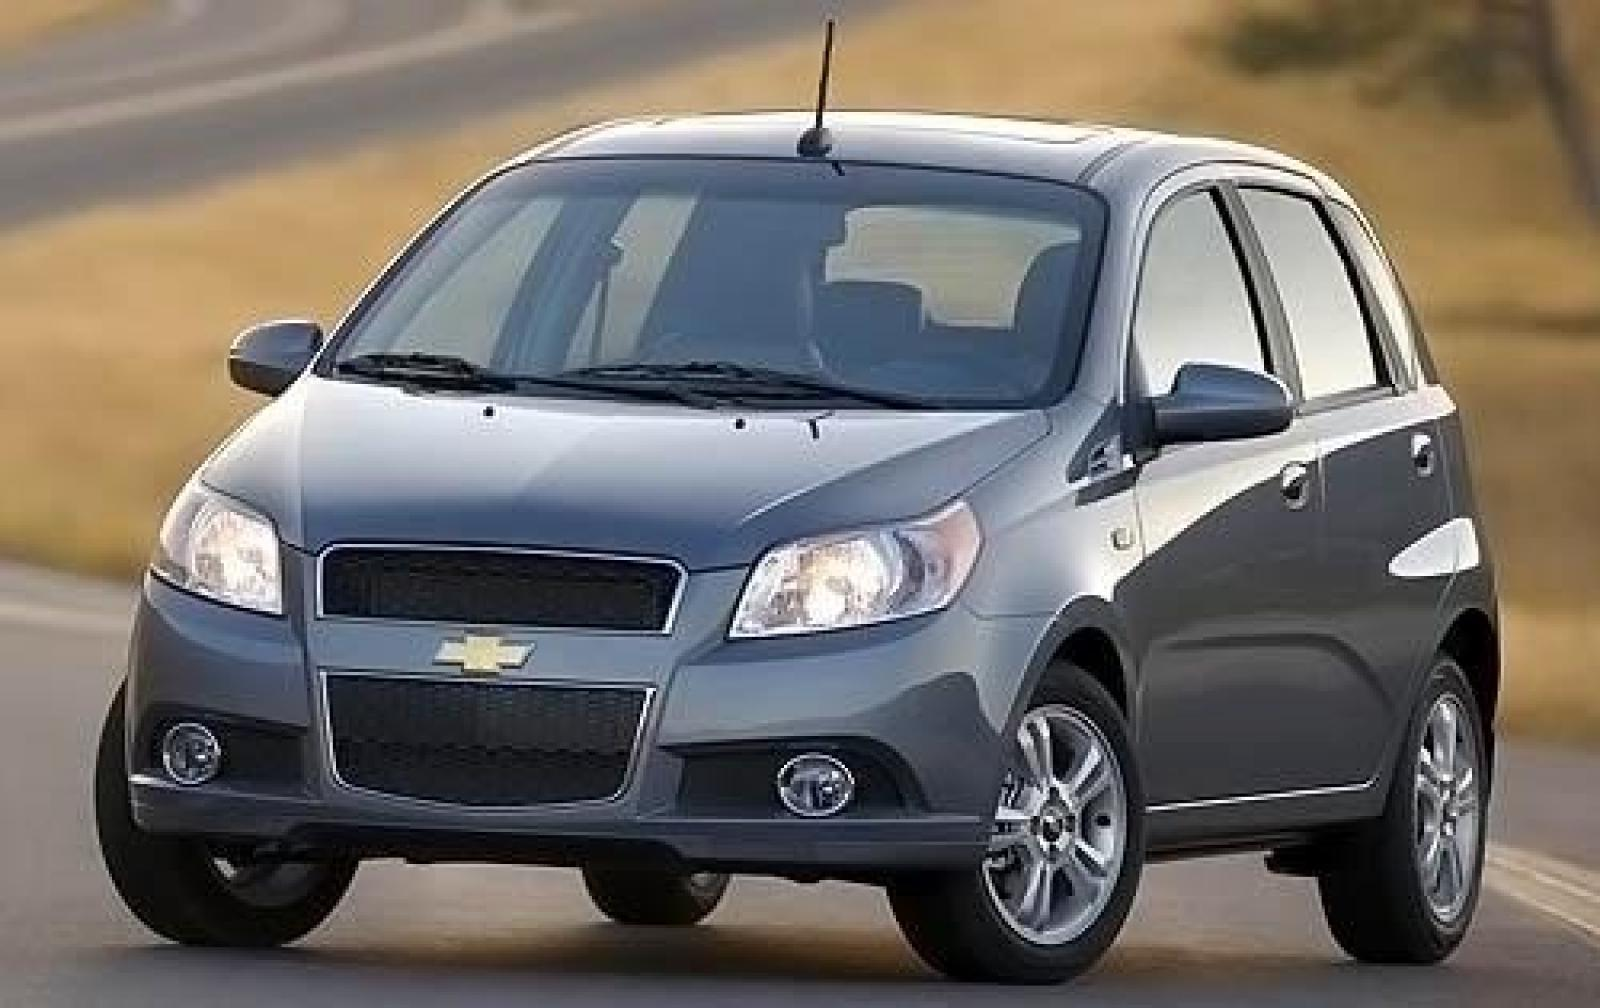 2011 chevrolet aveo information and photos zombiedrive. Black Bedroom Furniture Sets. Home Design Ideas